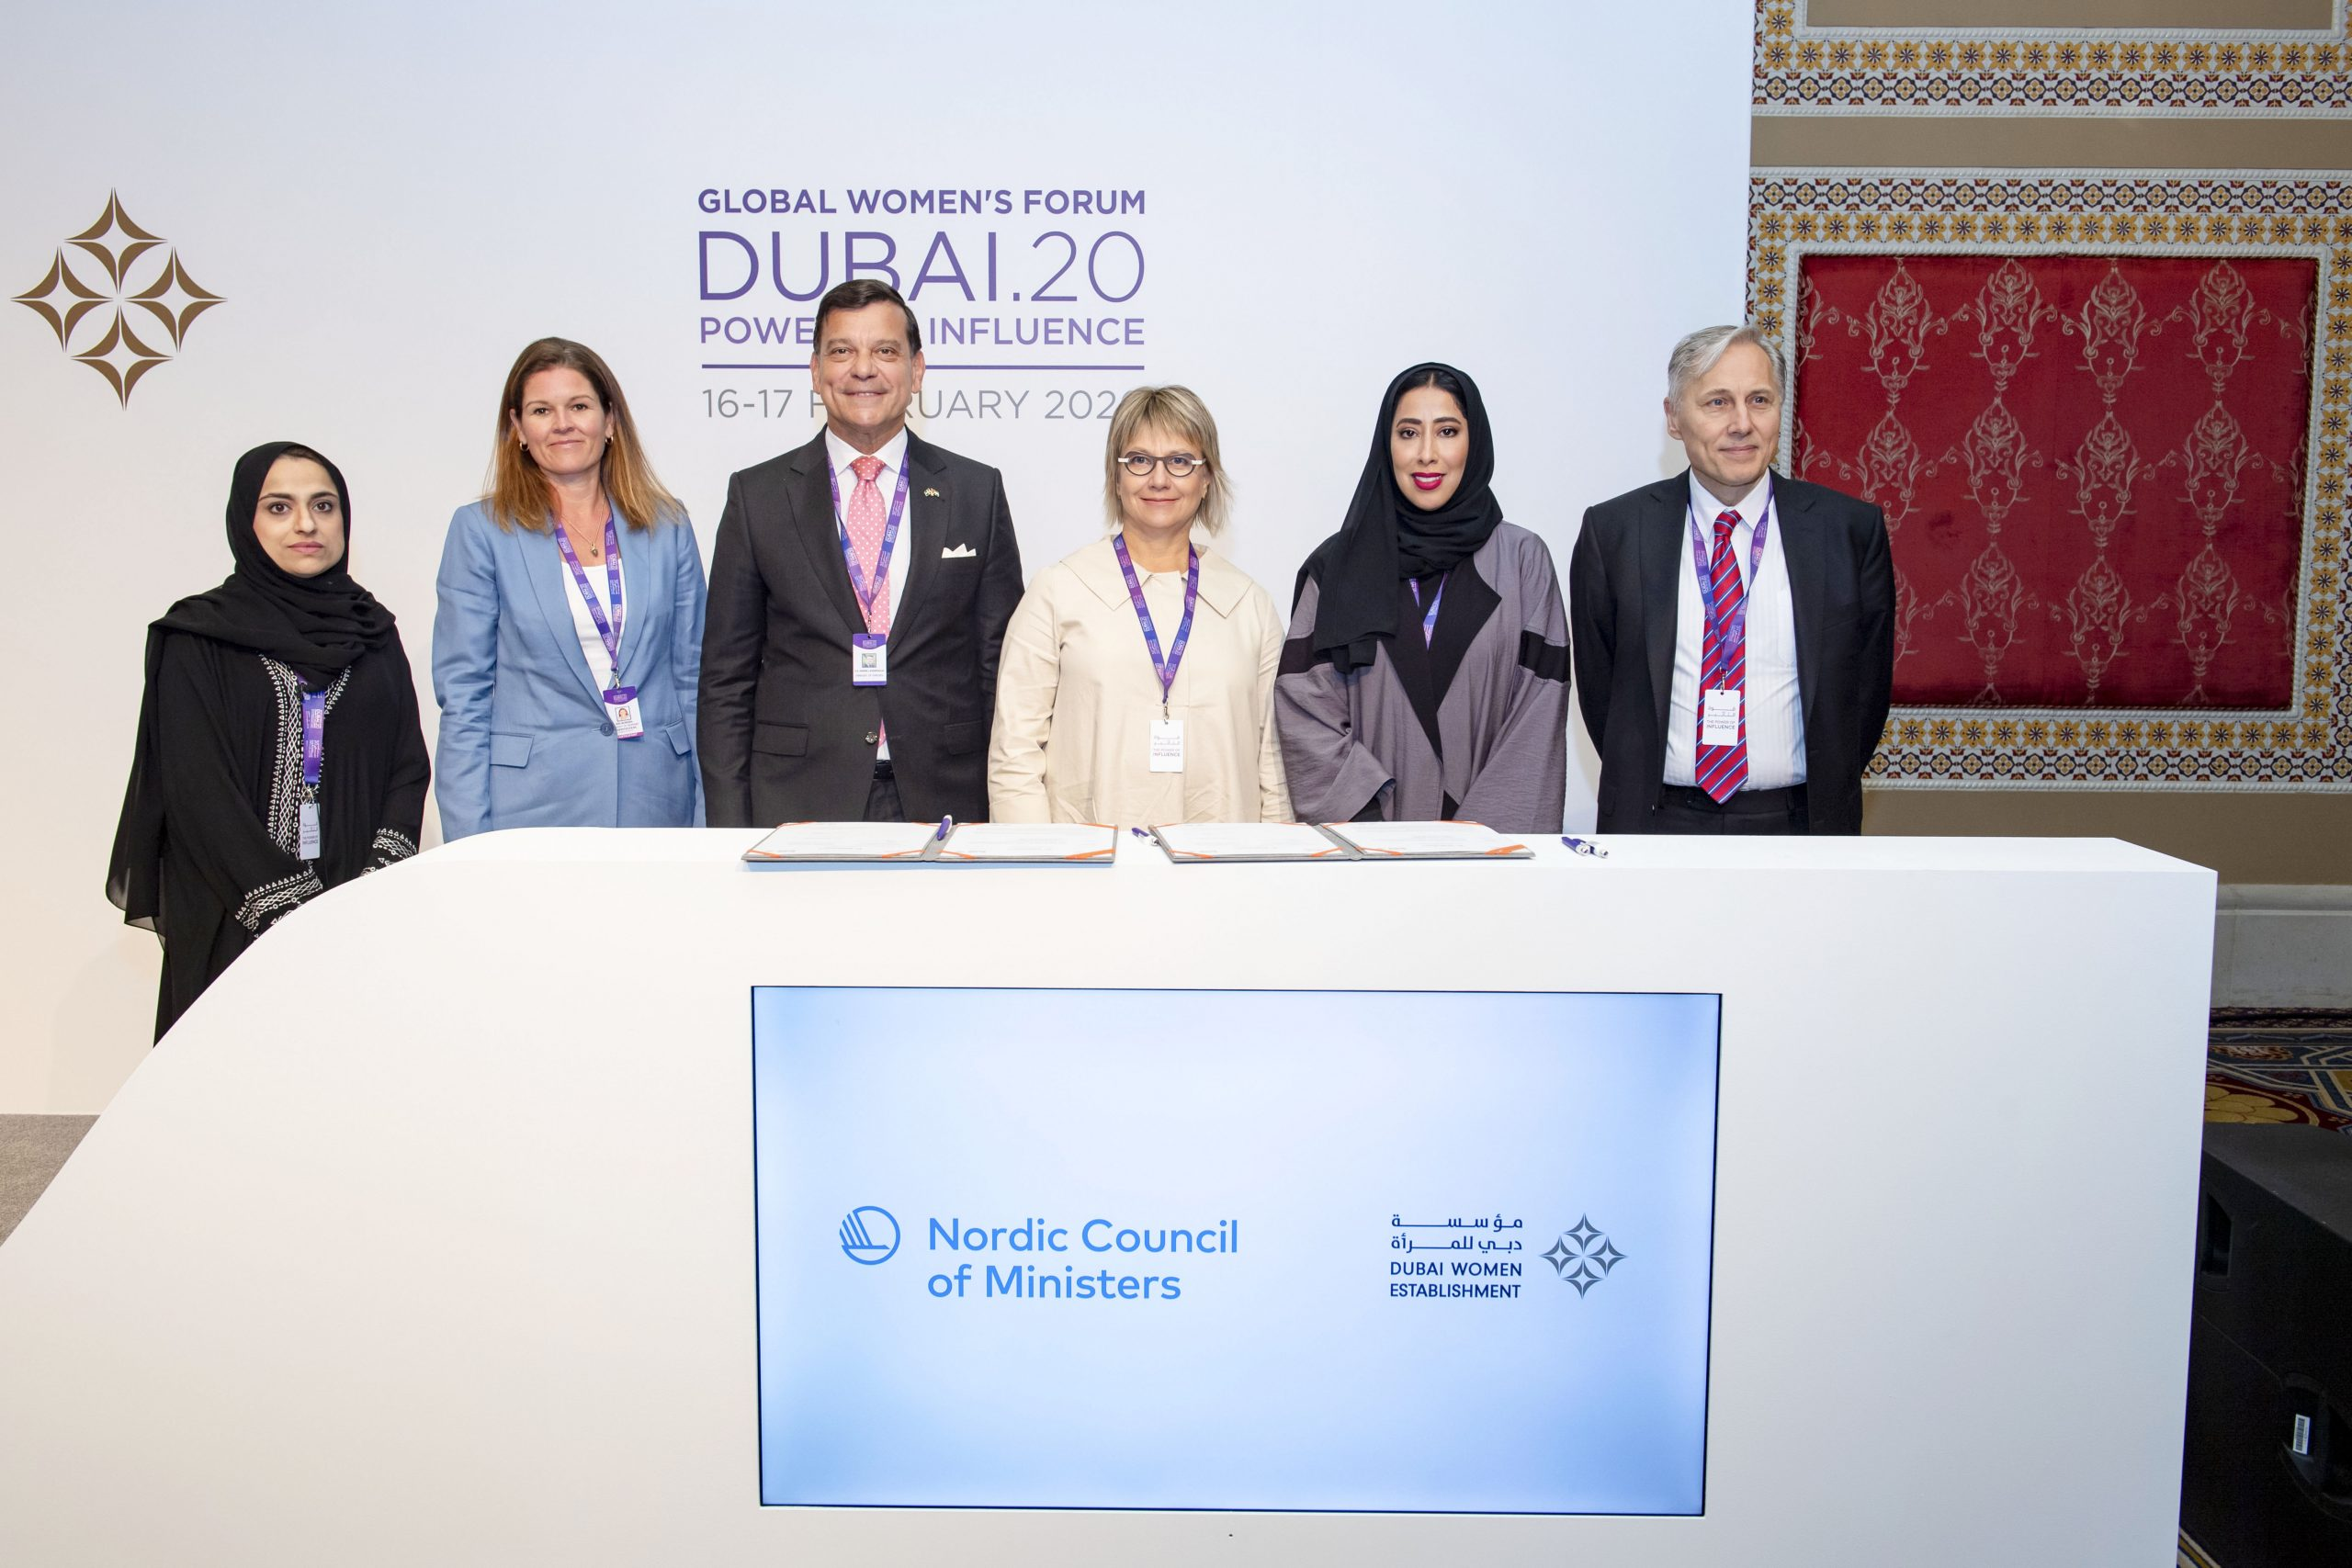 DWE and Nordic Embassies in UAE sign MoU to launch 'YES!' mentorship scheme at GWFD 2020